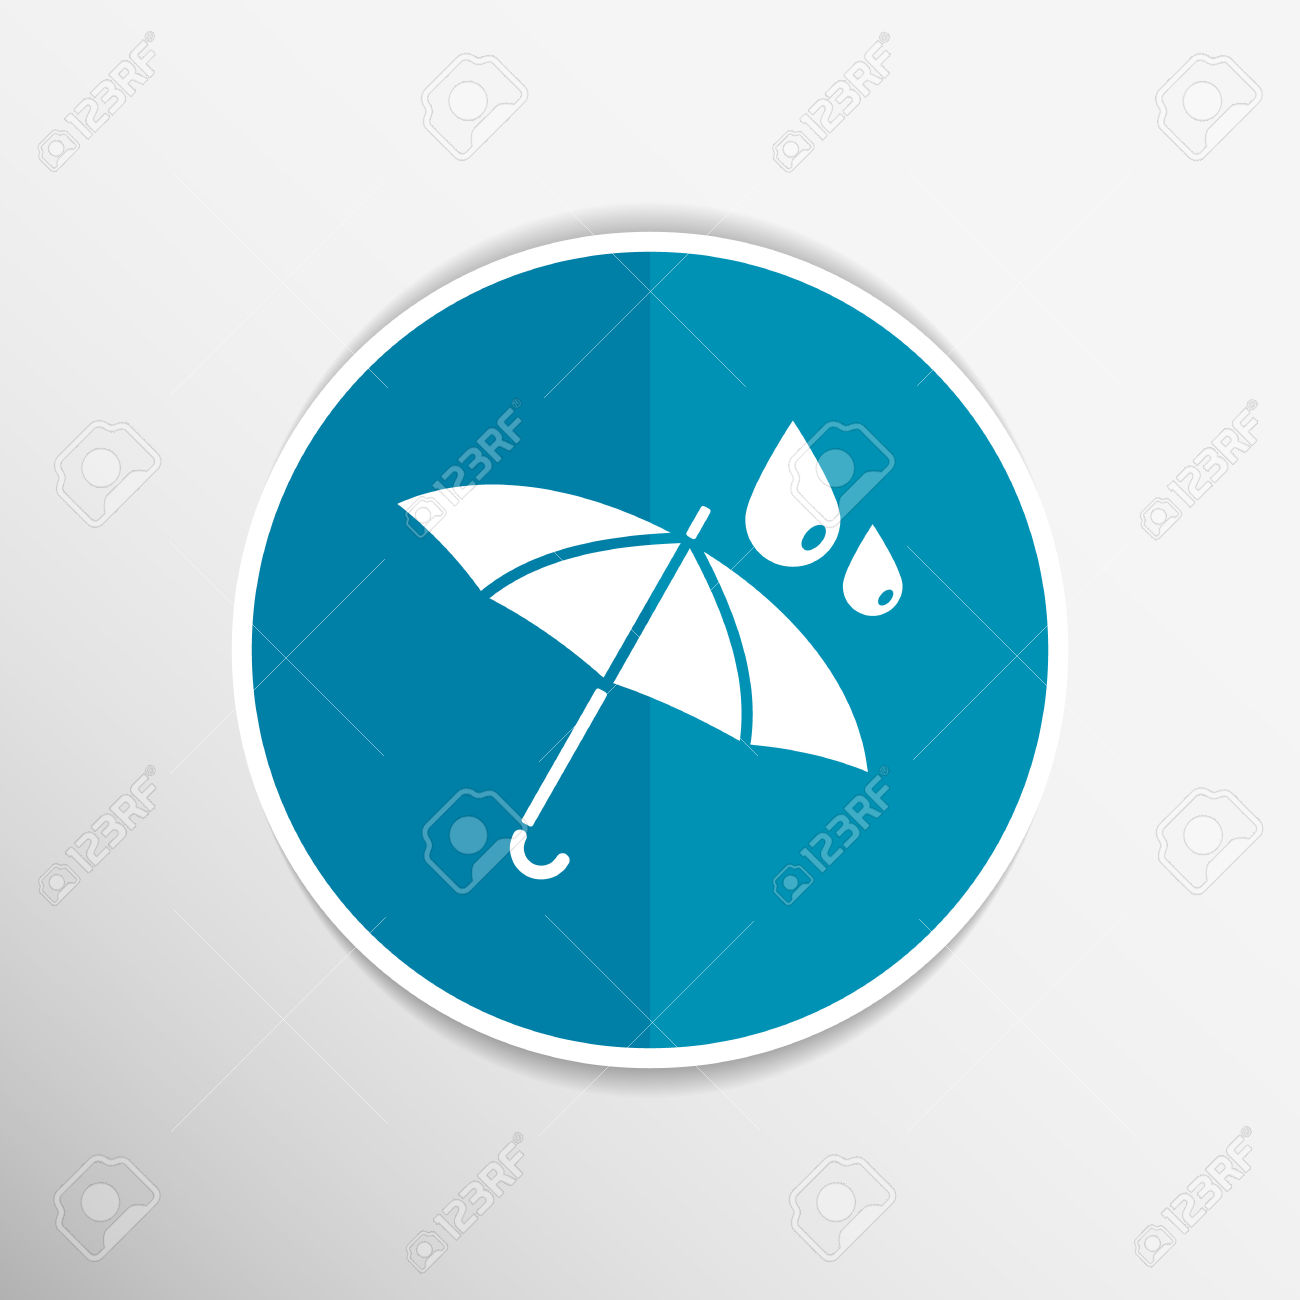 Waterproof Icon Water Proof Vector Symbol Umbrella. Royalty Free.